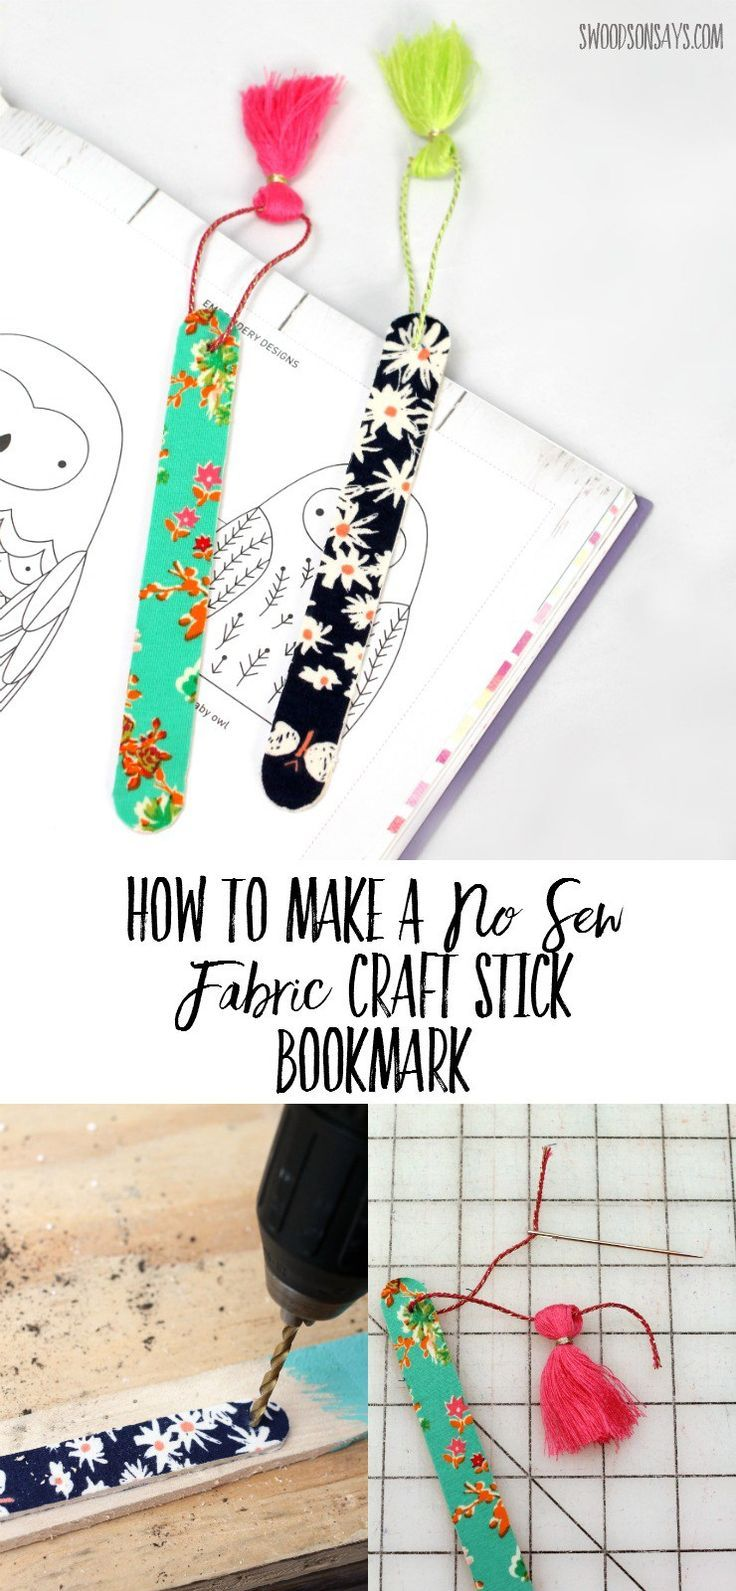 Bookmark Design Ideas long armed bookmarks How To Make A No Sew Fabric Bookmark